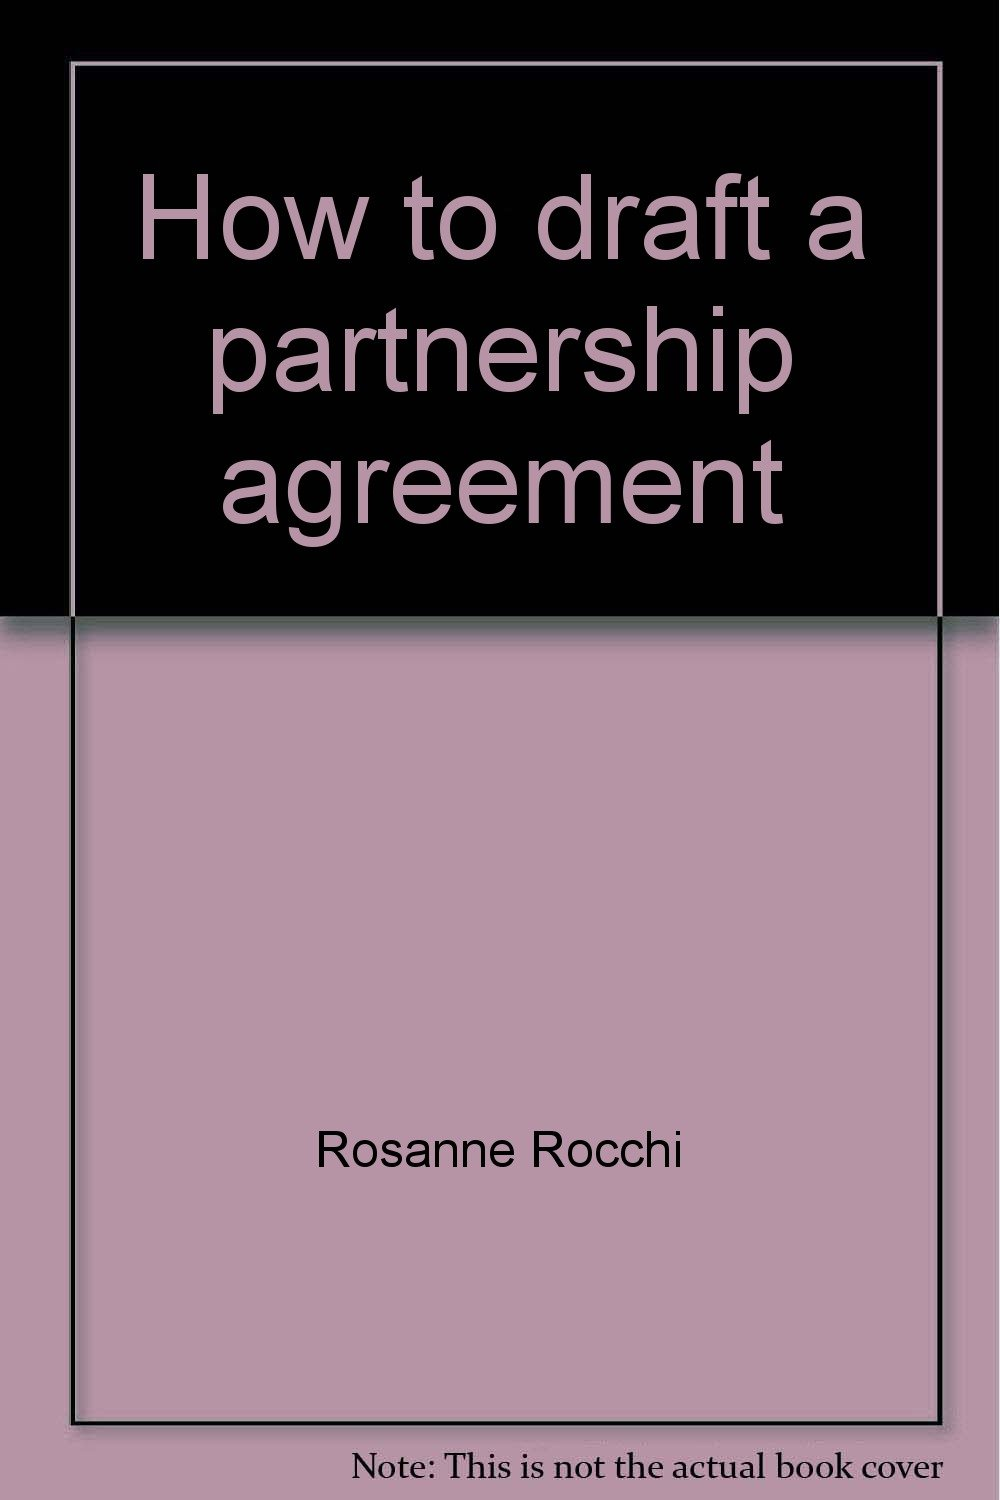 How To Draft A Partnership Agreement Rosanne Rocchi 9780774027519